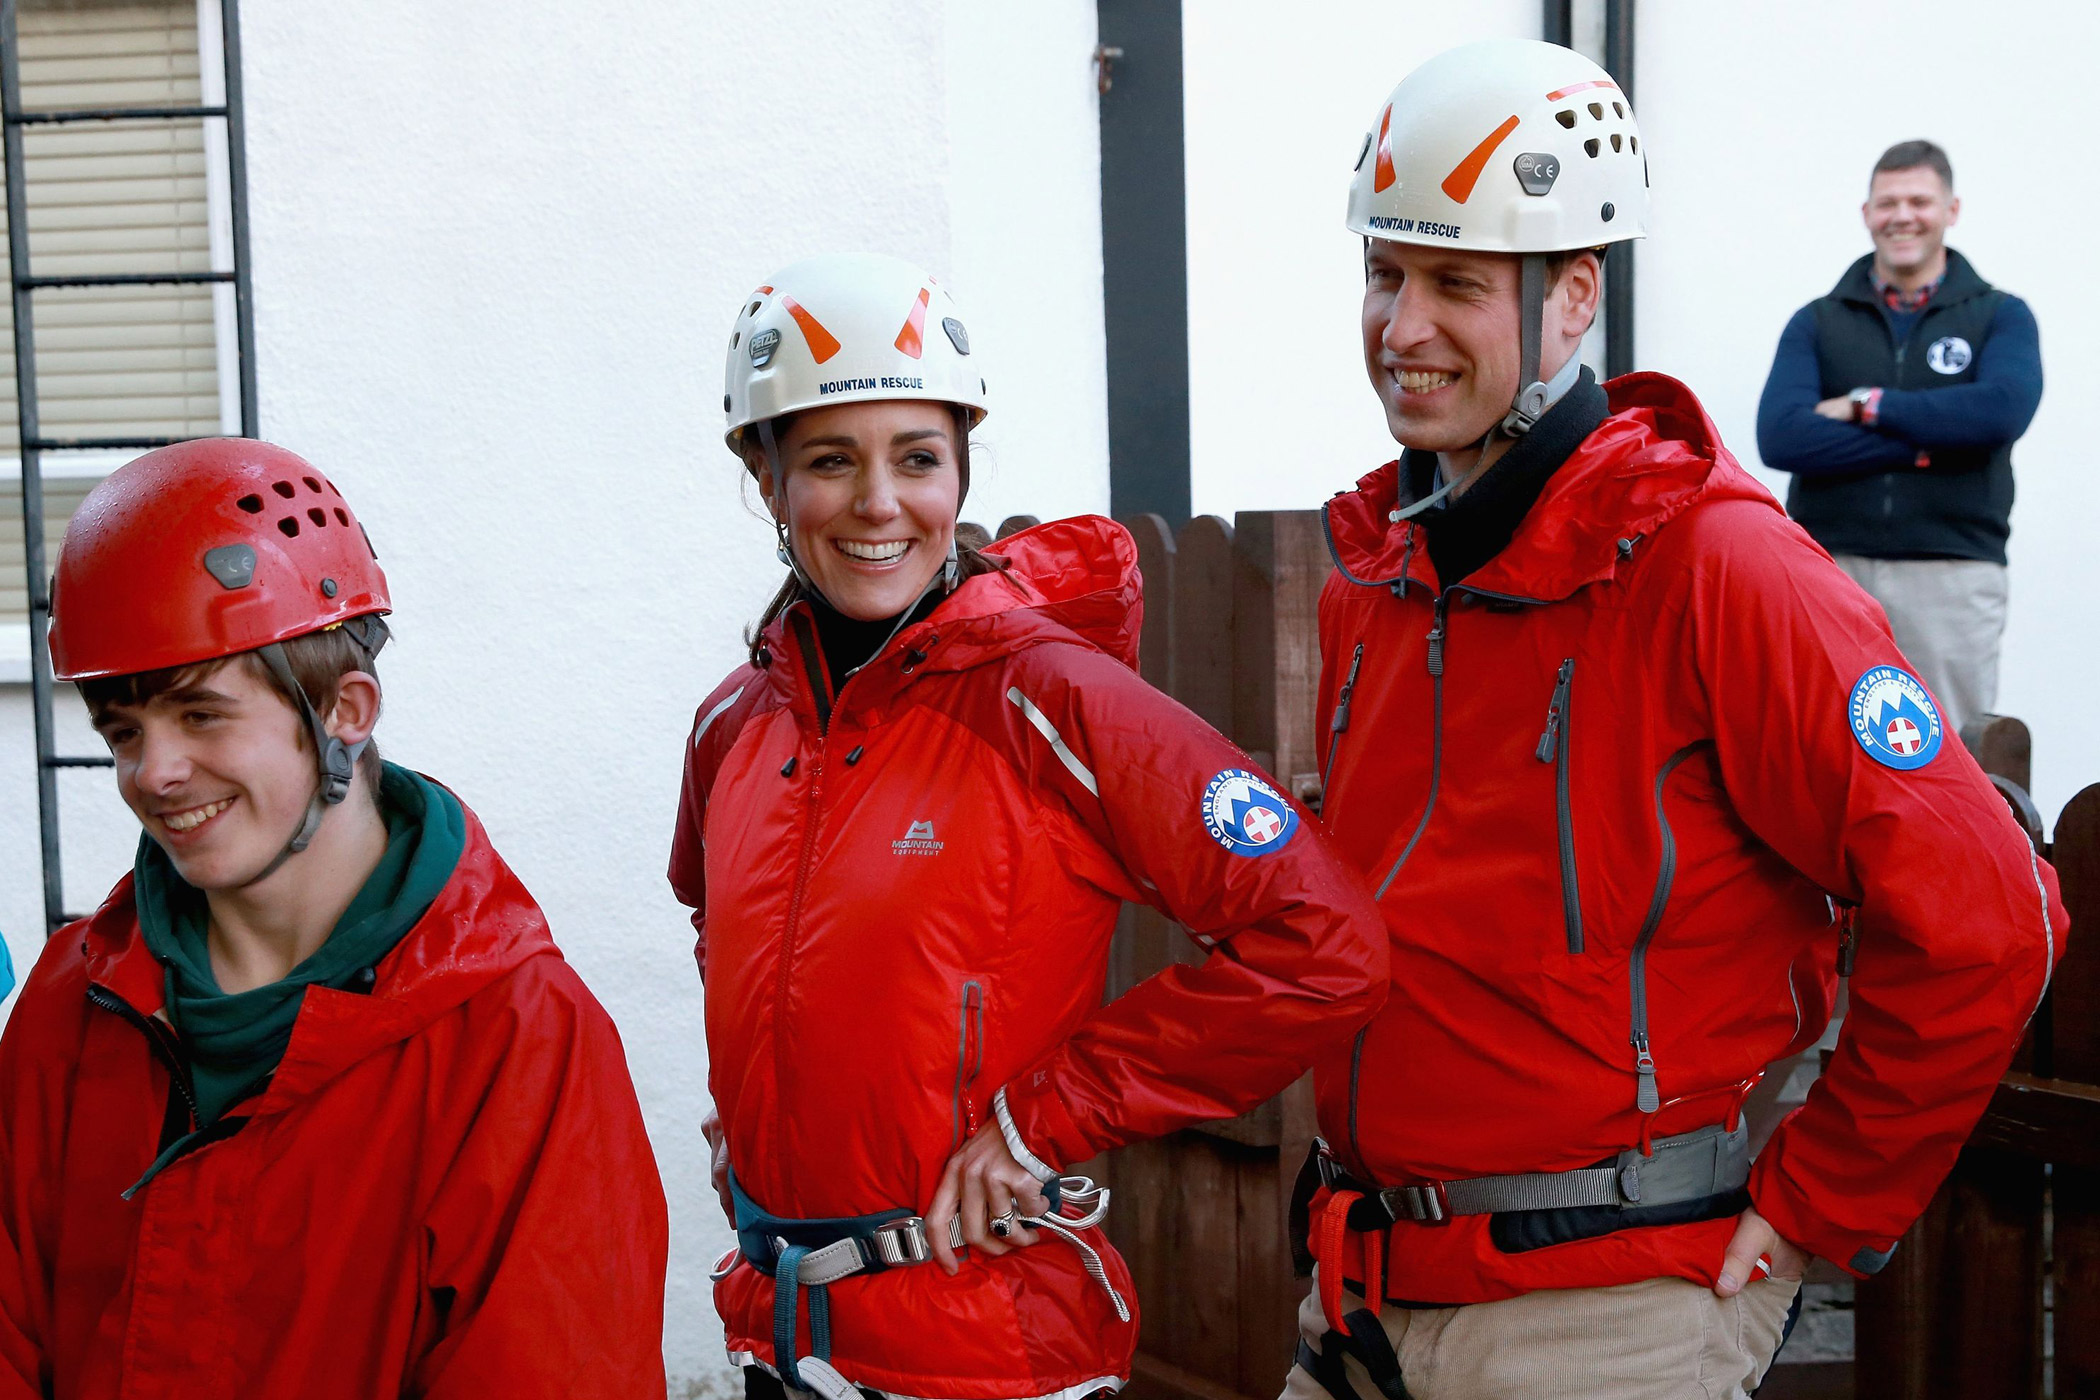 Brtitan's Prince William and Princess Kate, the Duke and Duchess of Cambridge, tour the Towers Residential Outdoor Education Centre in Capel Curig during a royal visit to North Wales on Friday Nov. 20, 2015. The Towers is an outdoor education center providing adventure activities for children.